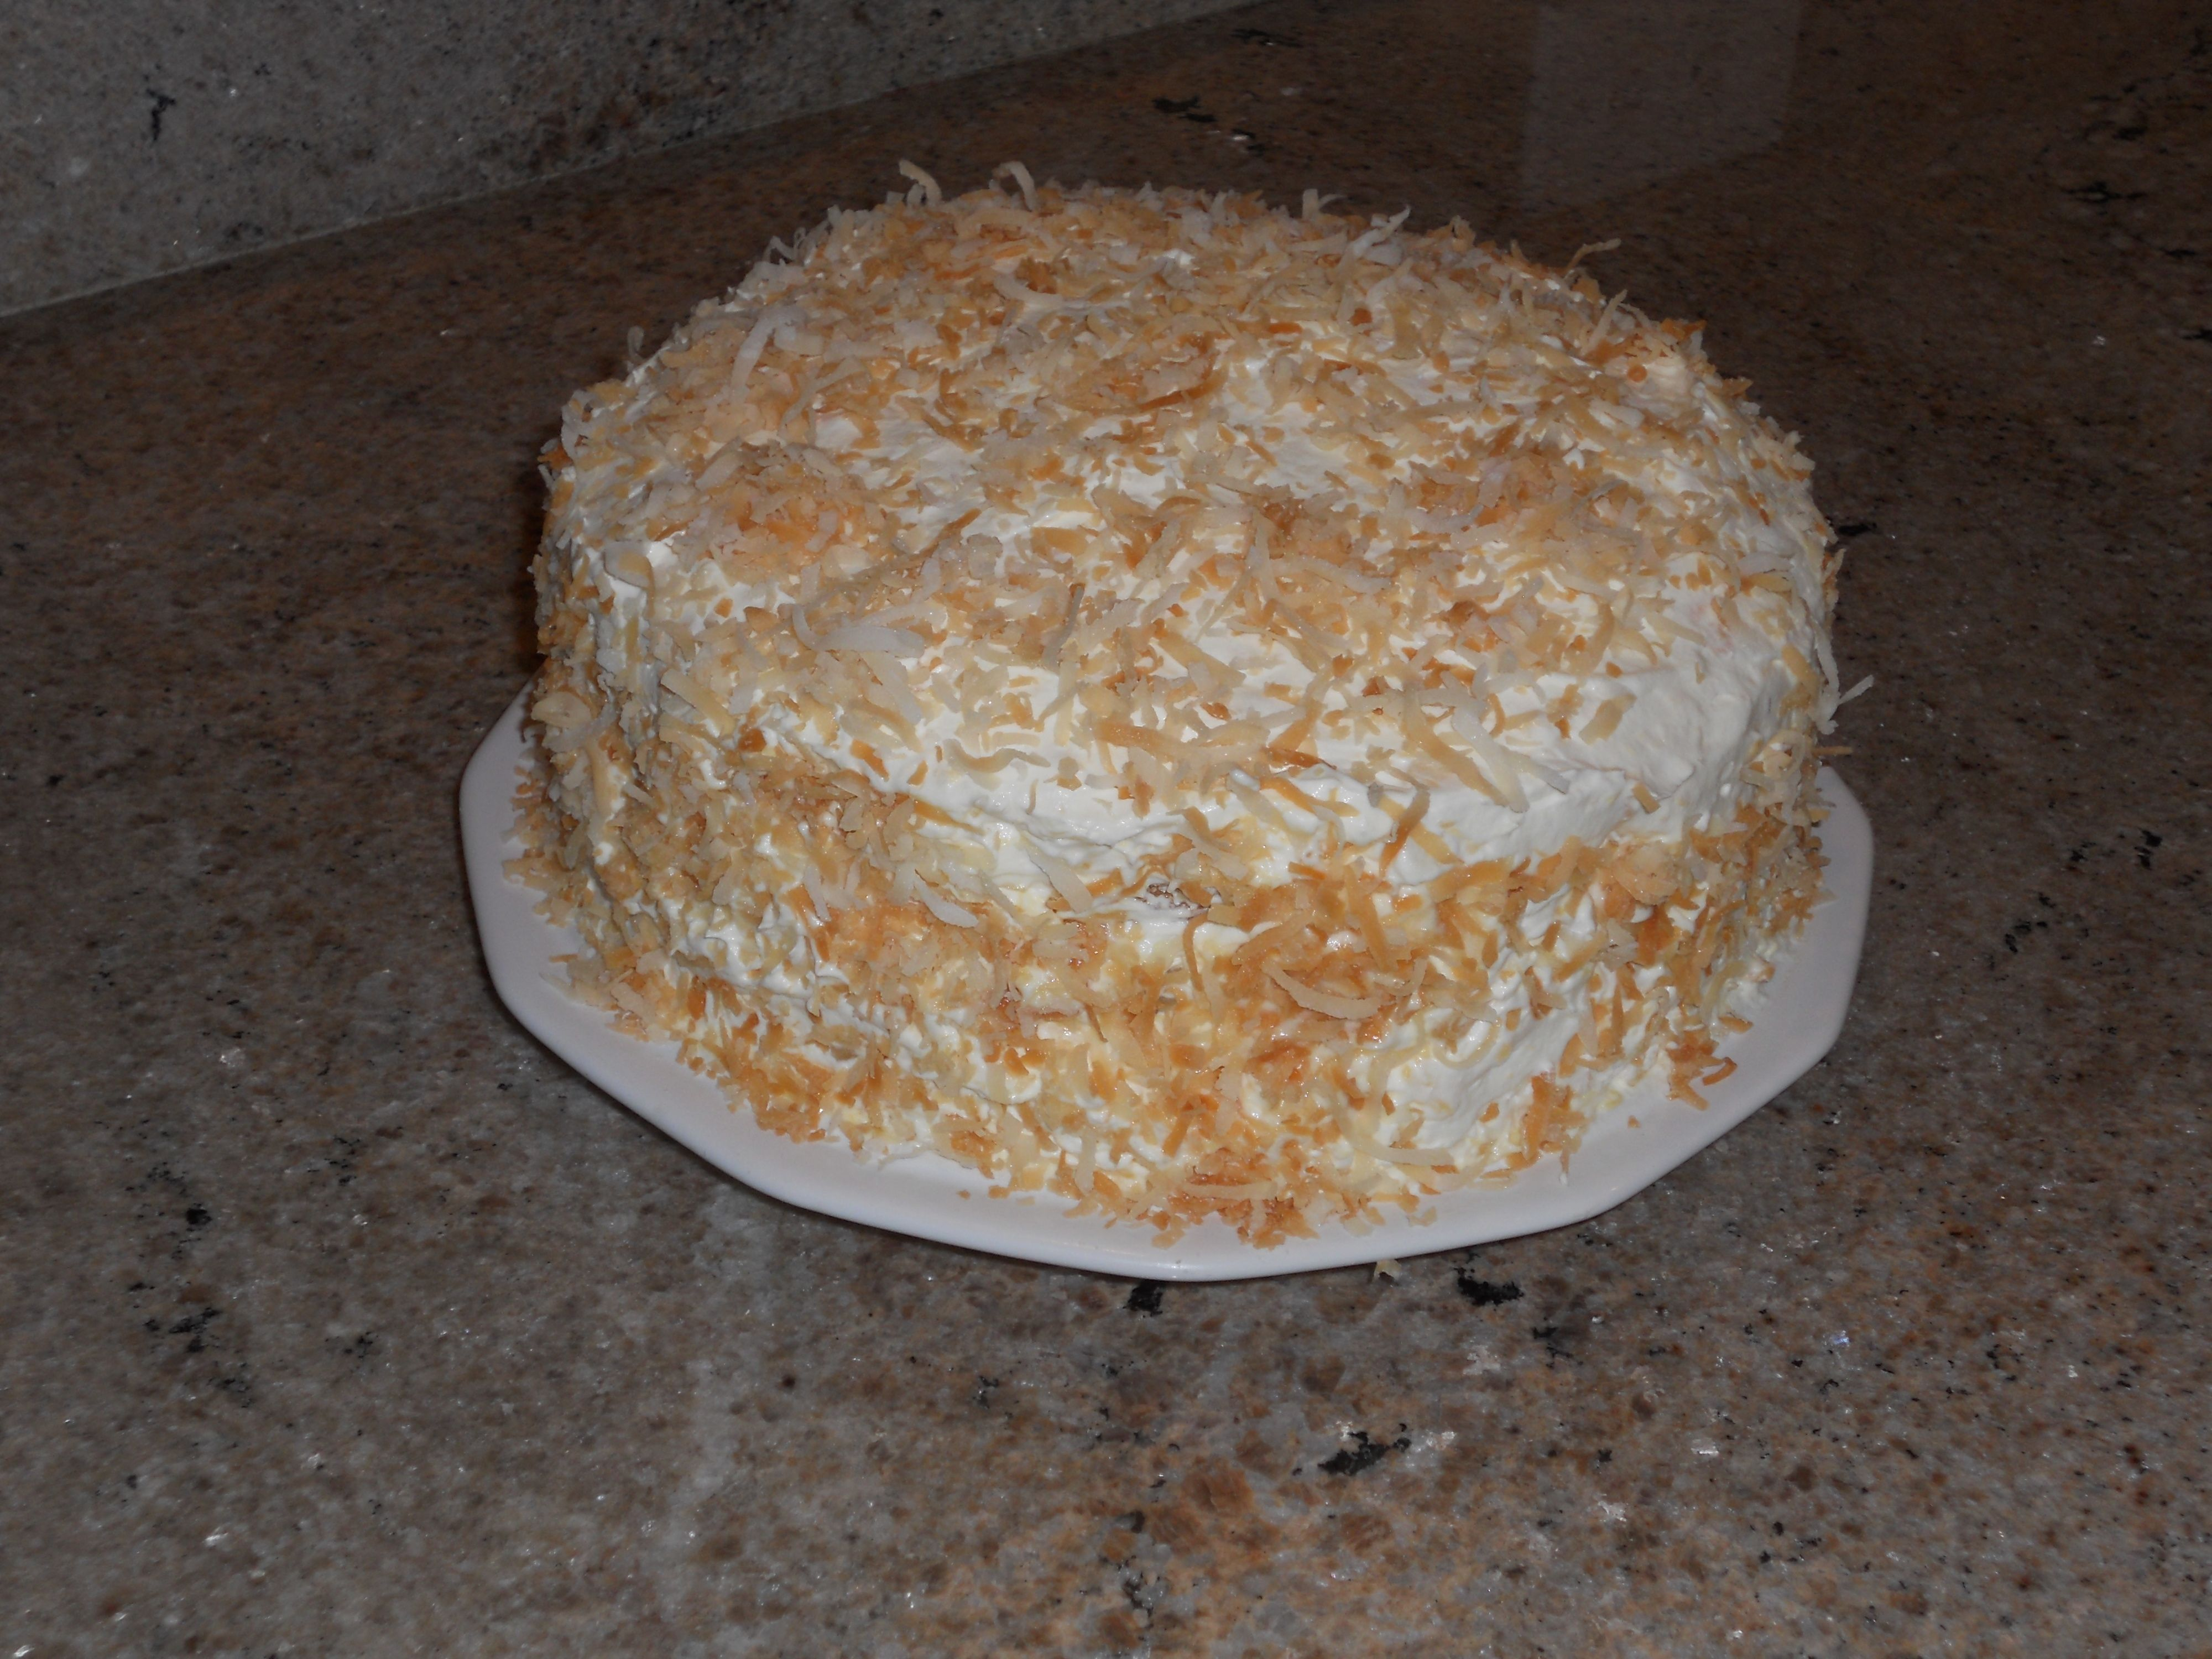 Cake Icing Recipe With Cool Whip: Mandarin Orange Cake With Pineapple Cool Whip Frosting